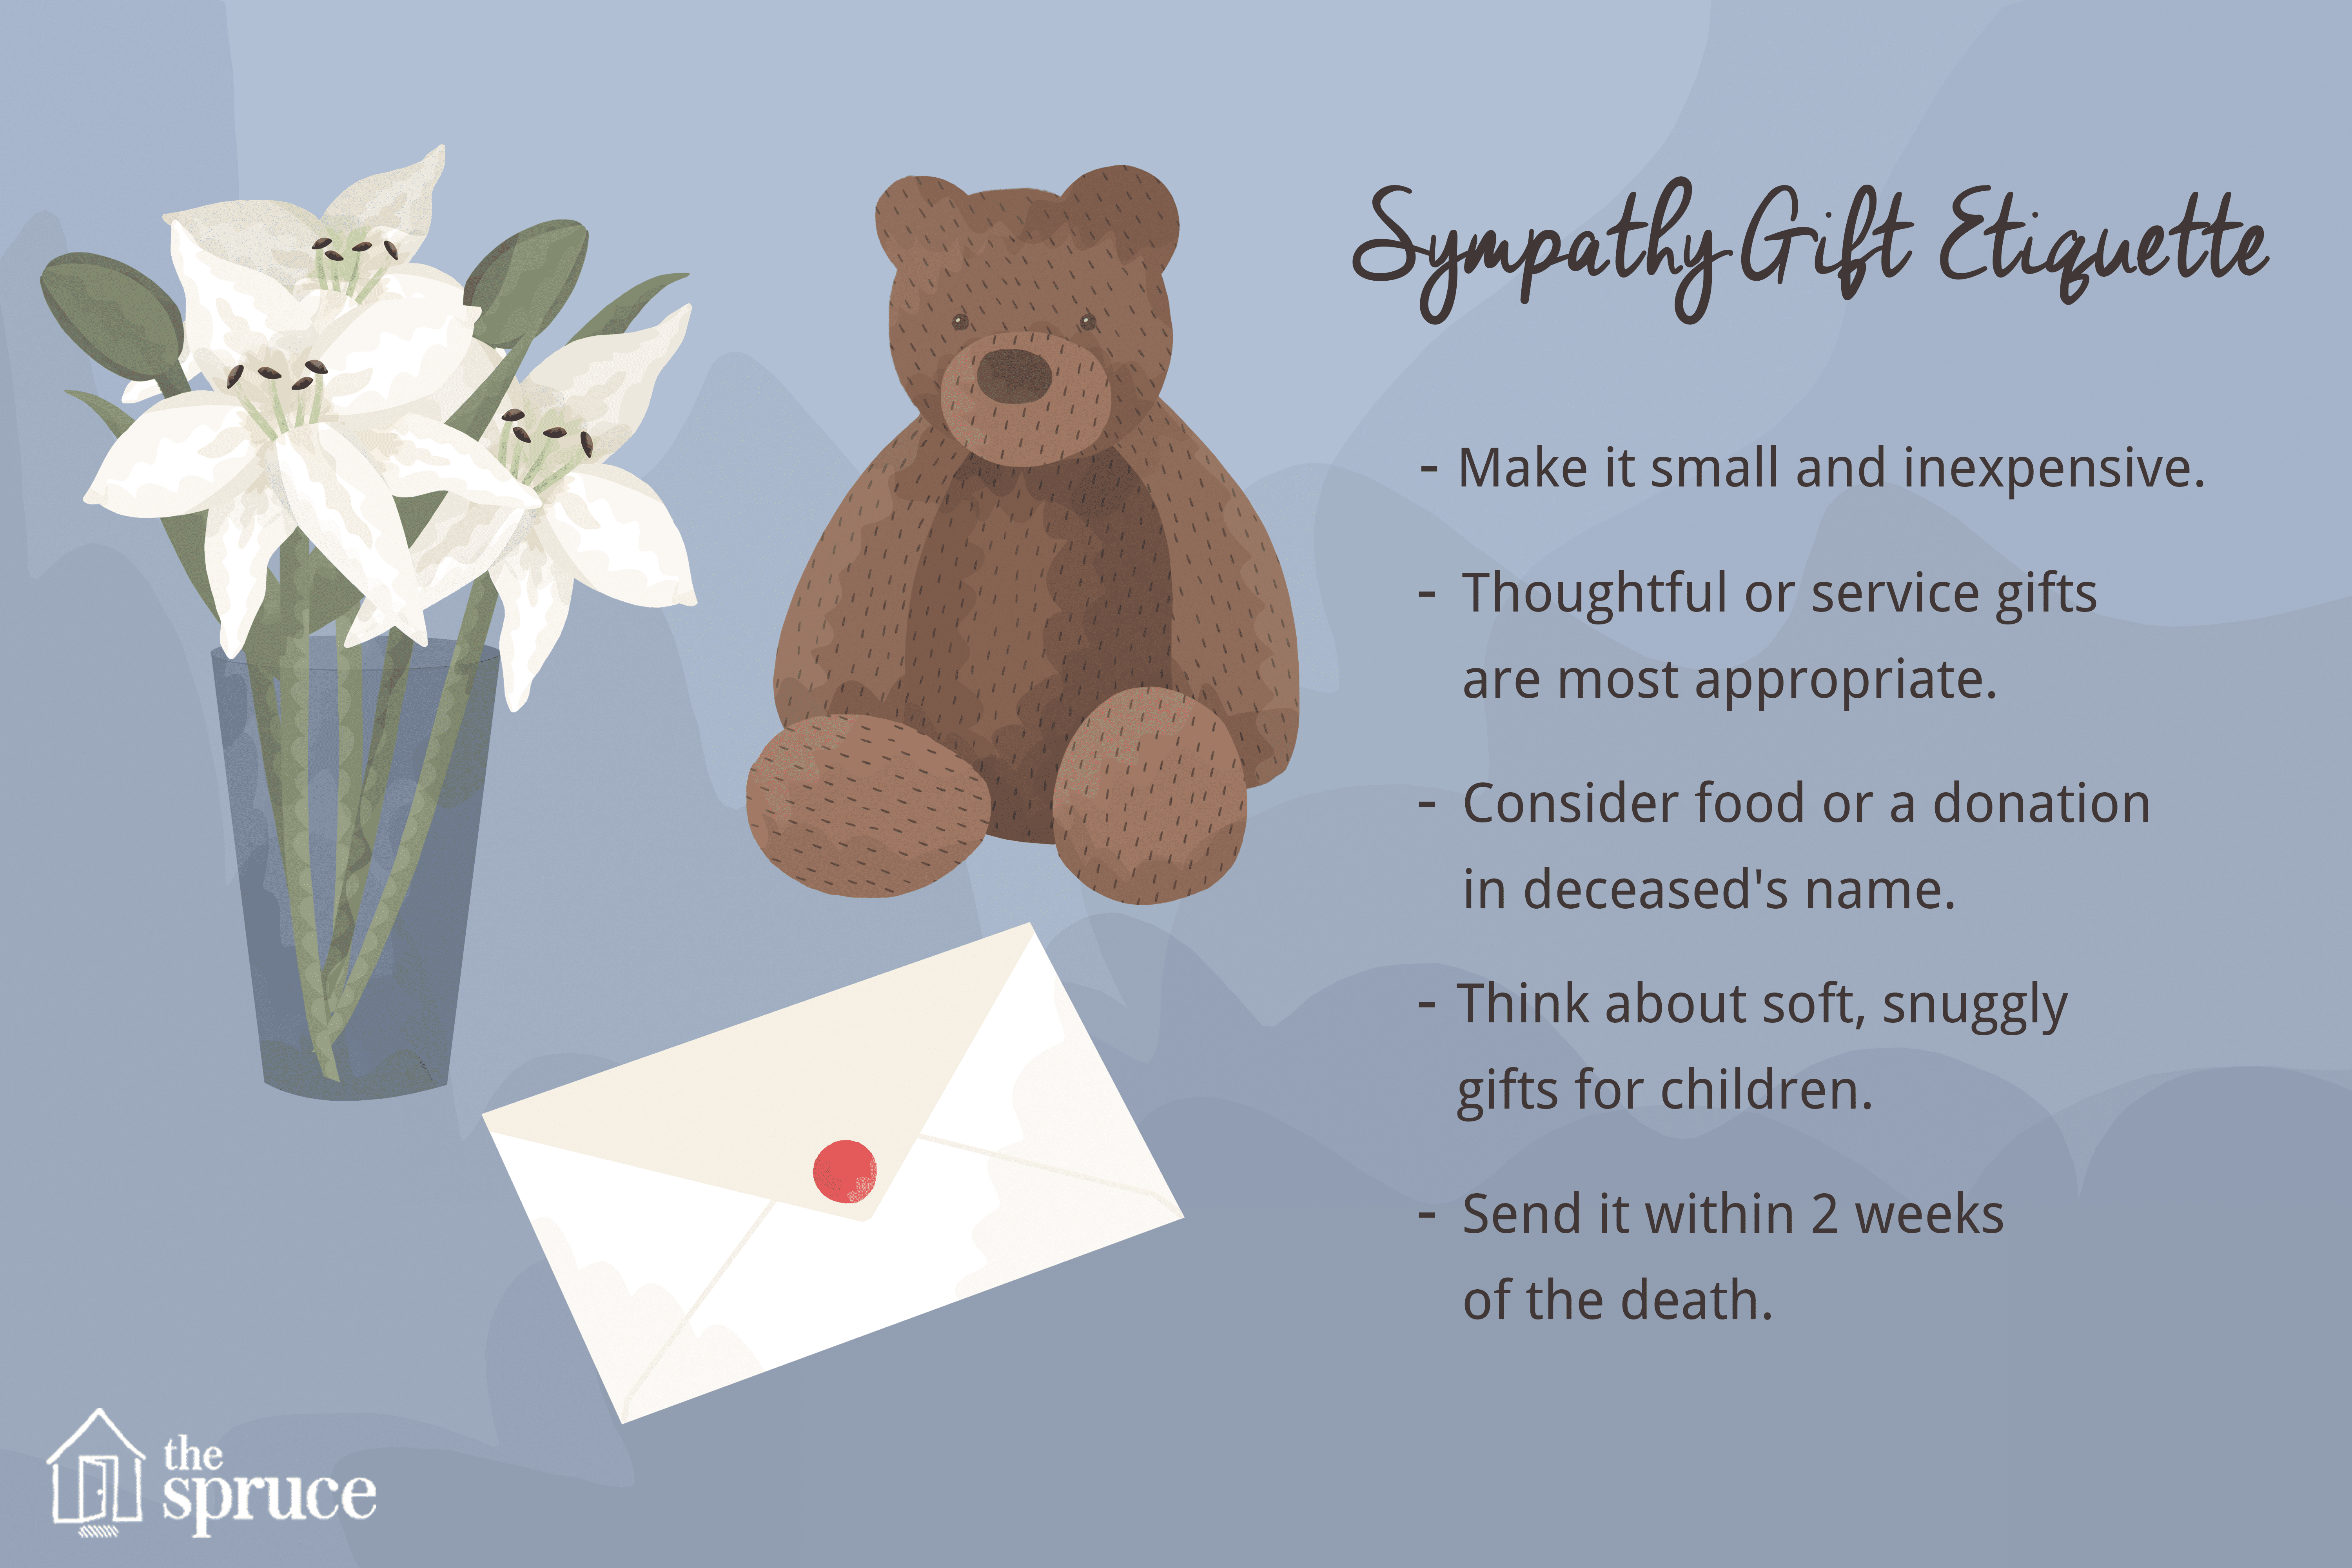 Illustration of lilies and teddy bear as sympathy gifts